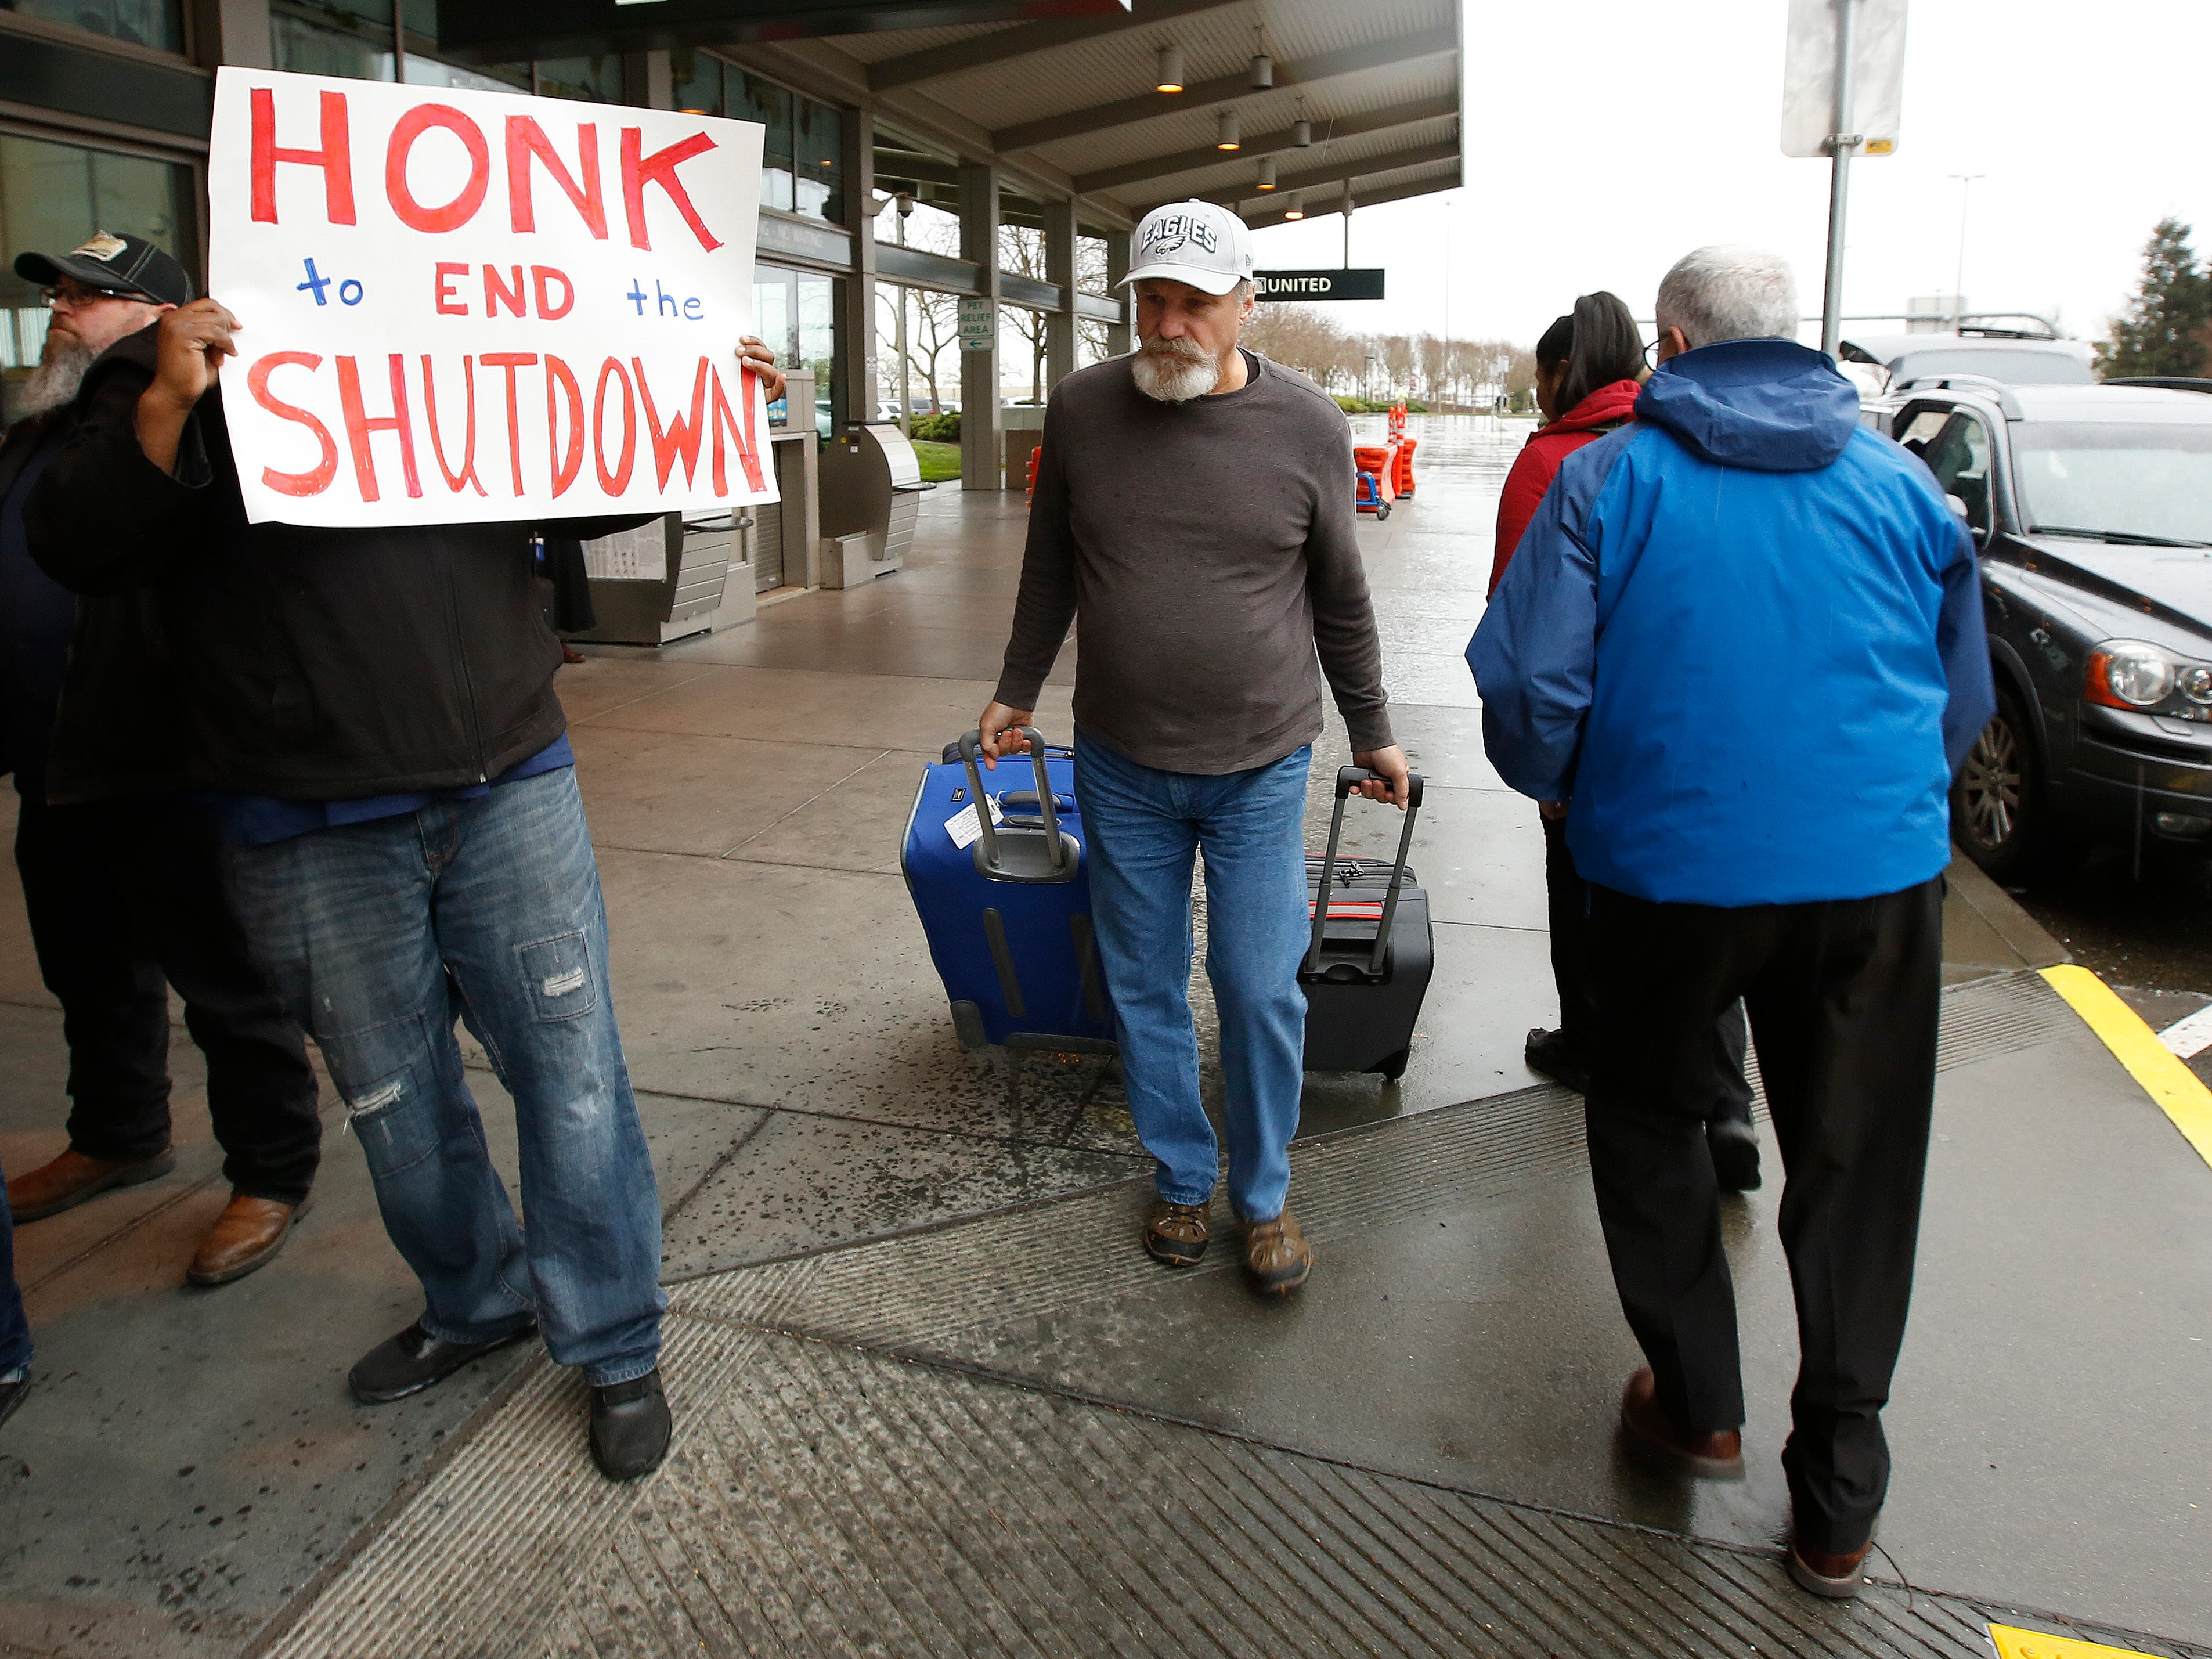 A man heading into the Sacramento International Airport passes demonstrators calling for President Donald Trump and Washington lawmakers to end the shutdown, Wednesday, Jan. 16, 2019, in Sacramento, Calif. More than two dozen federal employees and supporters called for an end to the partial government shutdown now in its fourth week. (AP Photo/Rich Pedroncelli) ORG XMIT: CARP302